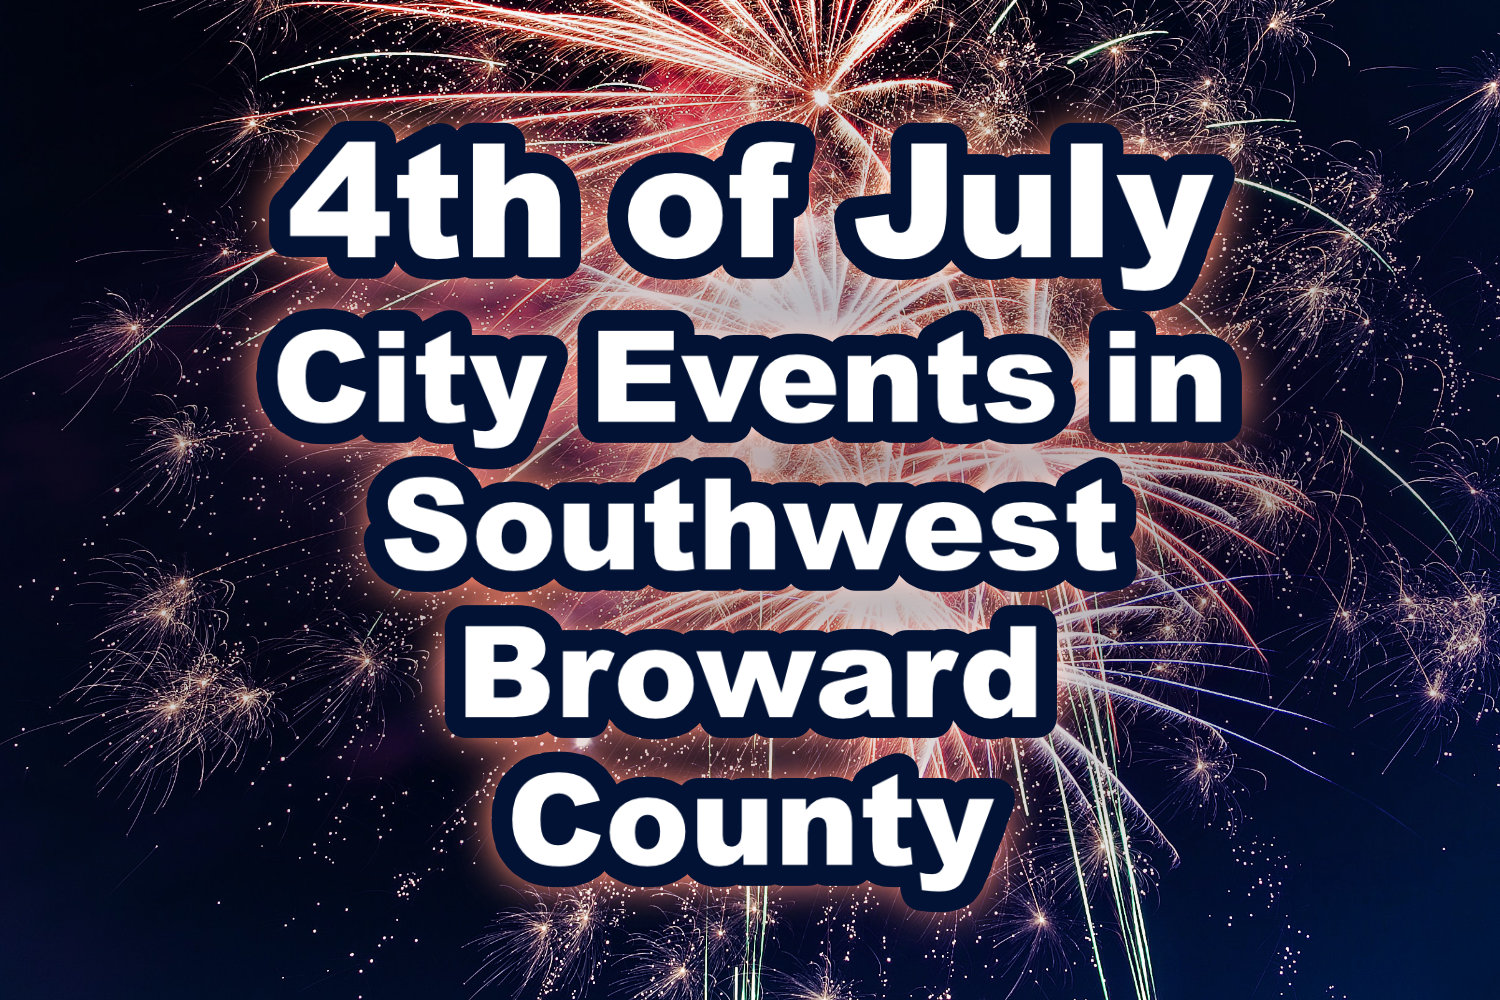 Fourth of July Events in Southwest Broward County